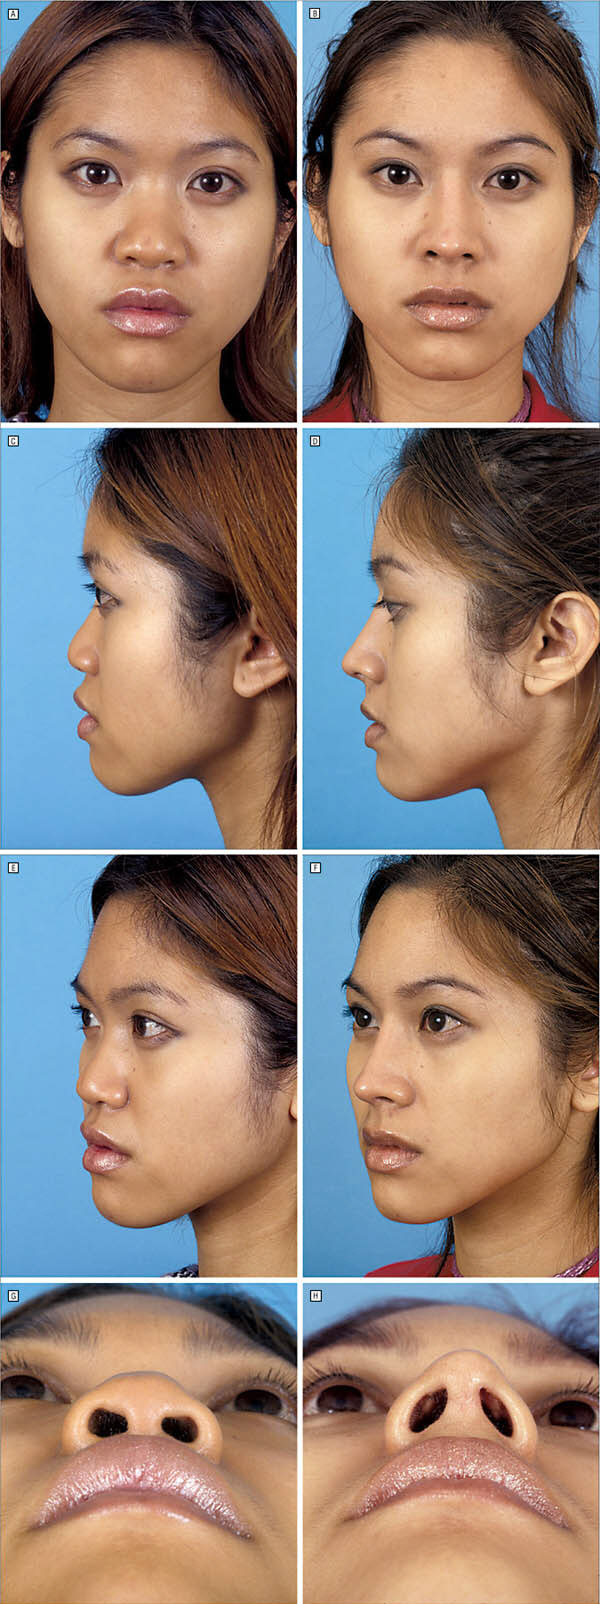 Major rhinoplasty performed on an Asian female.